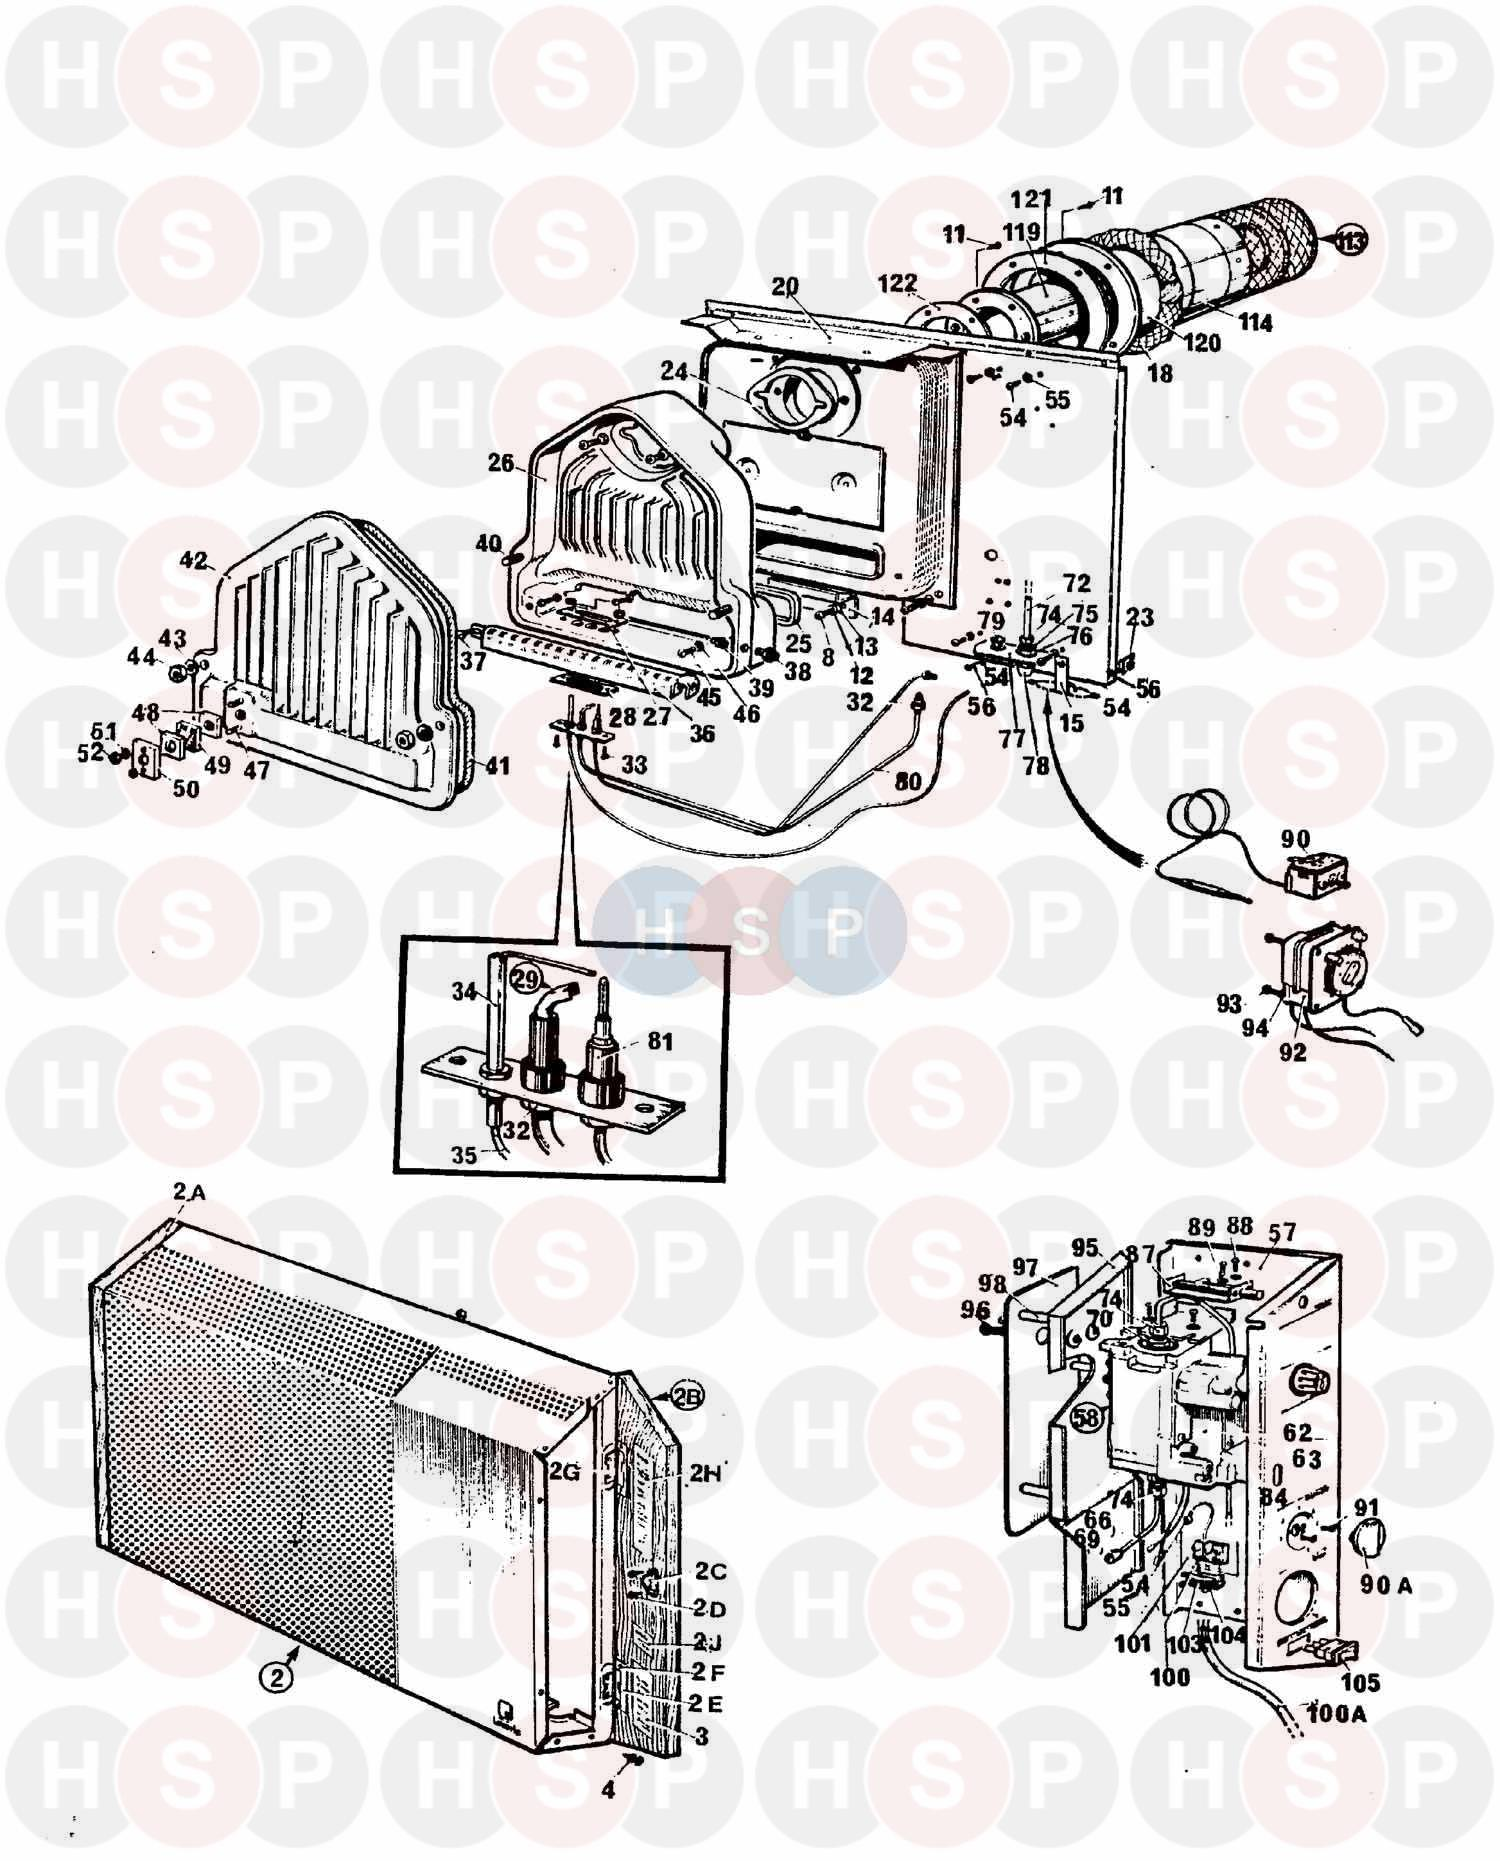 Assembly diagram for Potterton LEVANTE B.F. AUTOMATIC